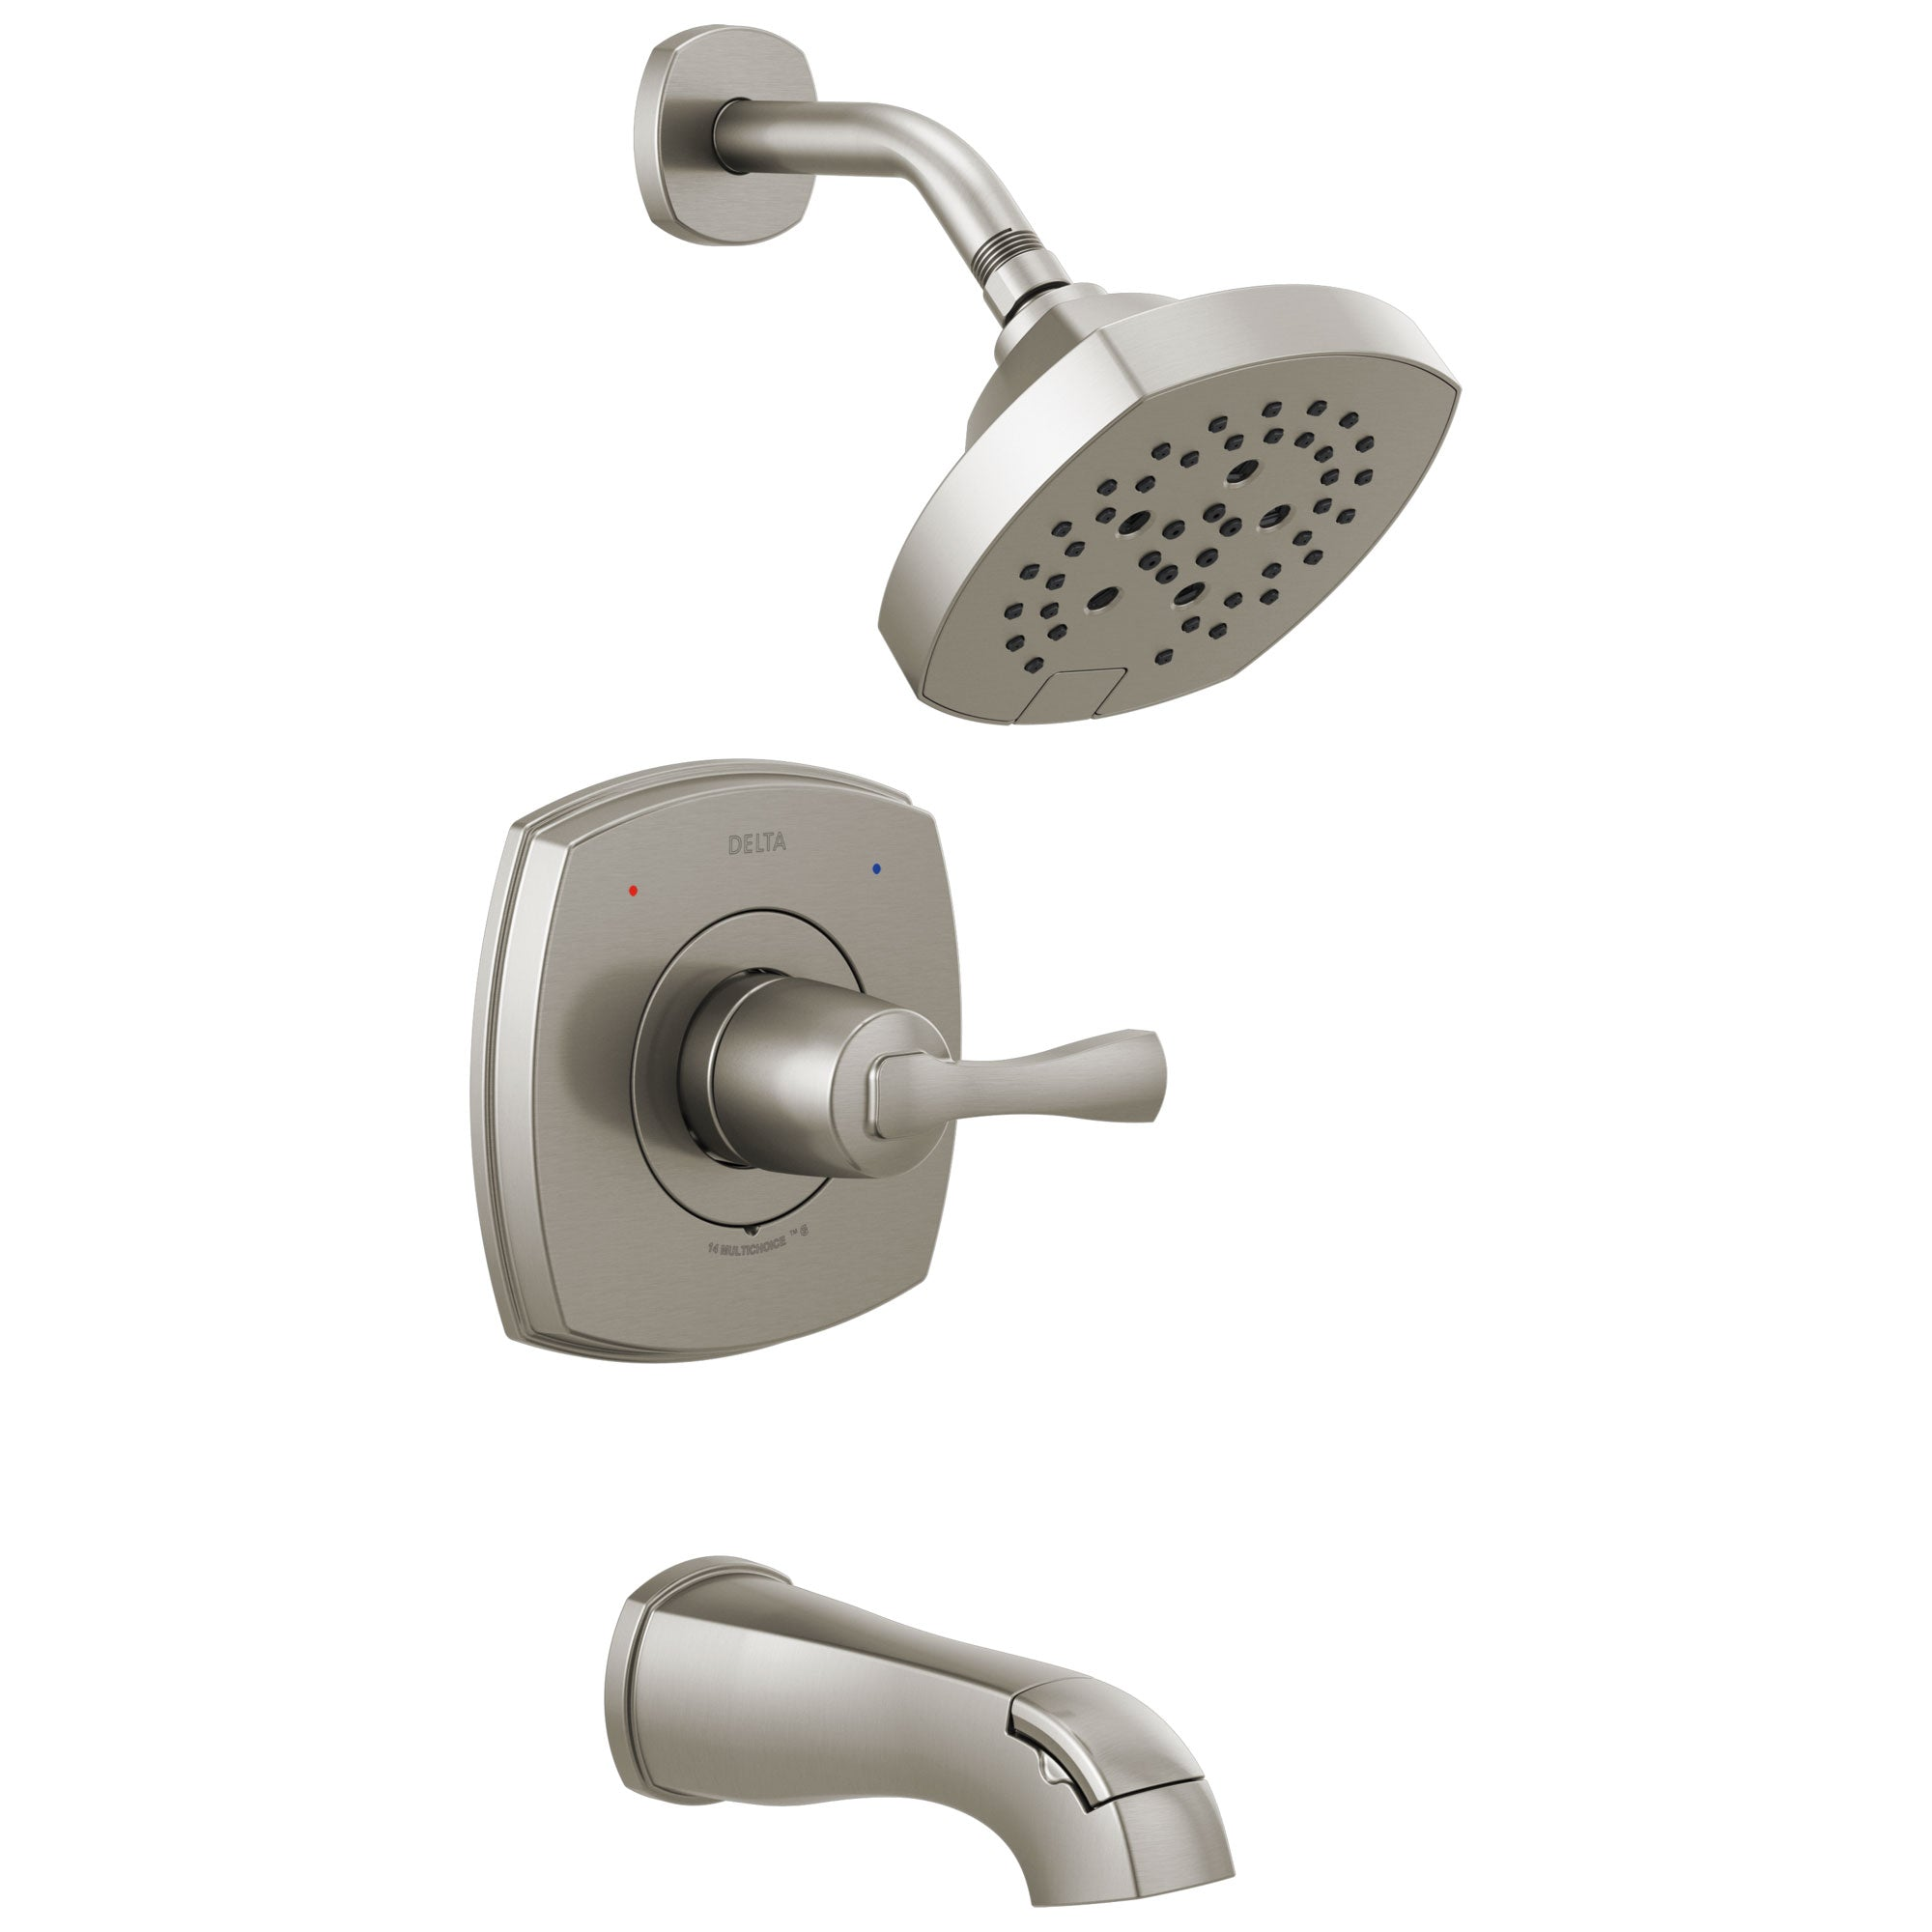 Delta Stryke Stainless Steel Finish 14 Series Tub & Shower Combination Faucet Includes Single Lever Handle, Cartridge, and Valve with Stops D3428V